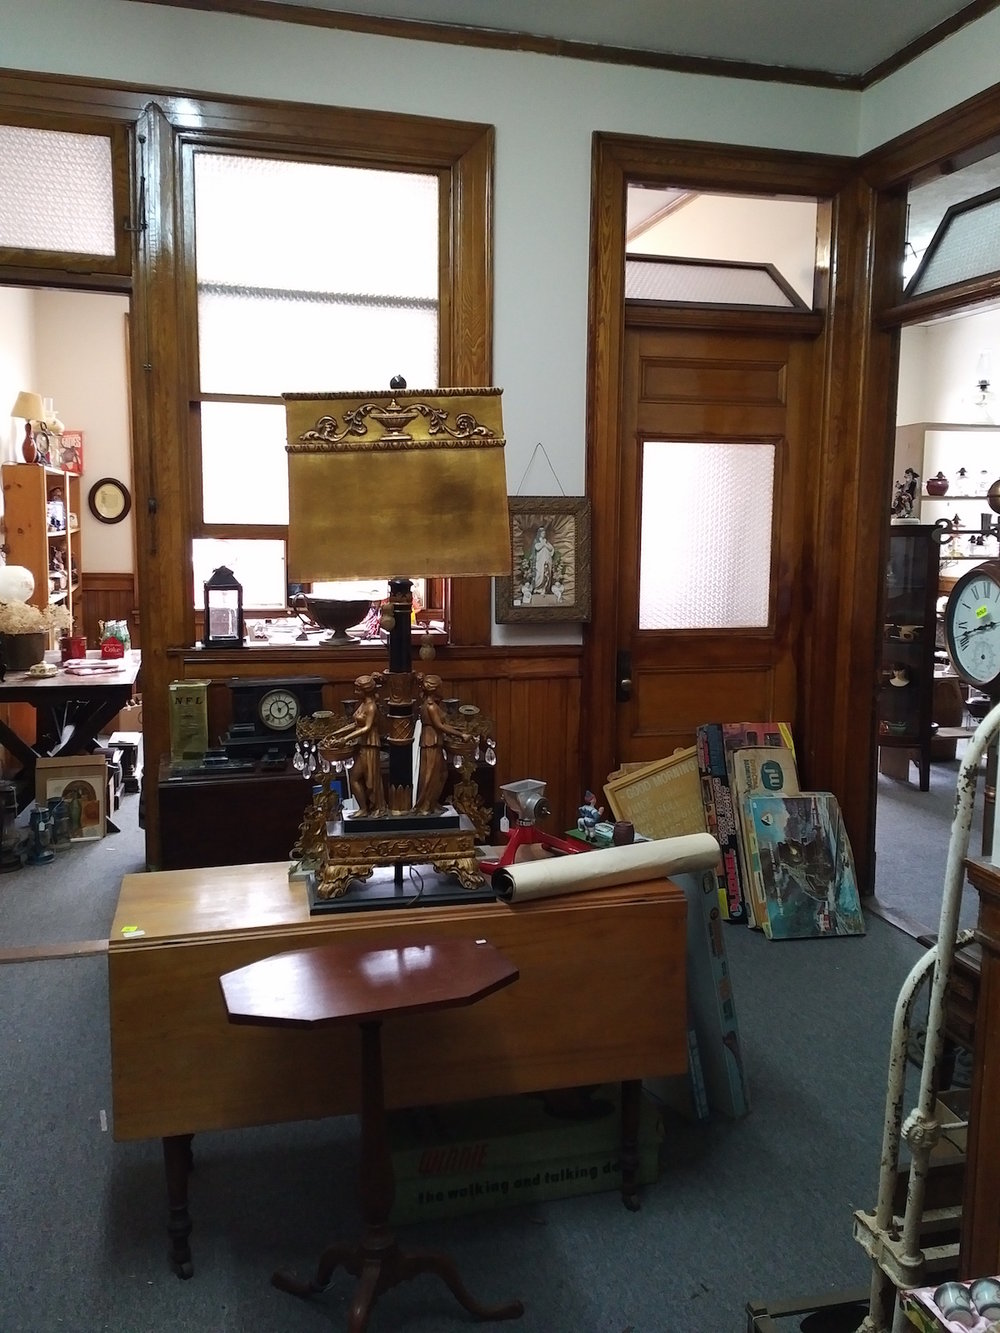 Hilltop Antiques retains much of the architecture of the old office space -- frosted glass windows and interior doors separating the offices.